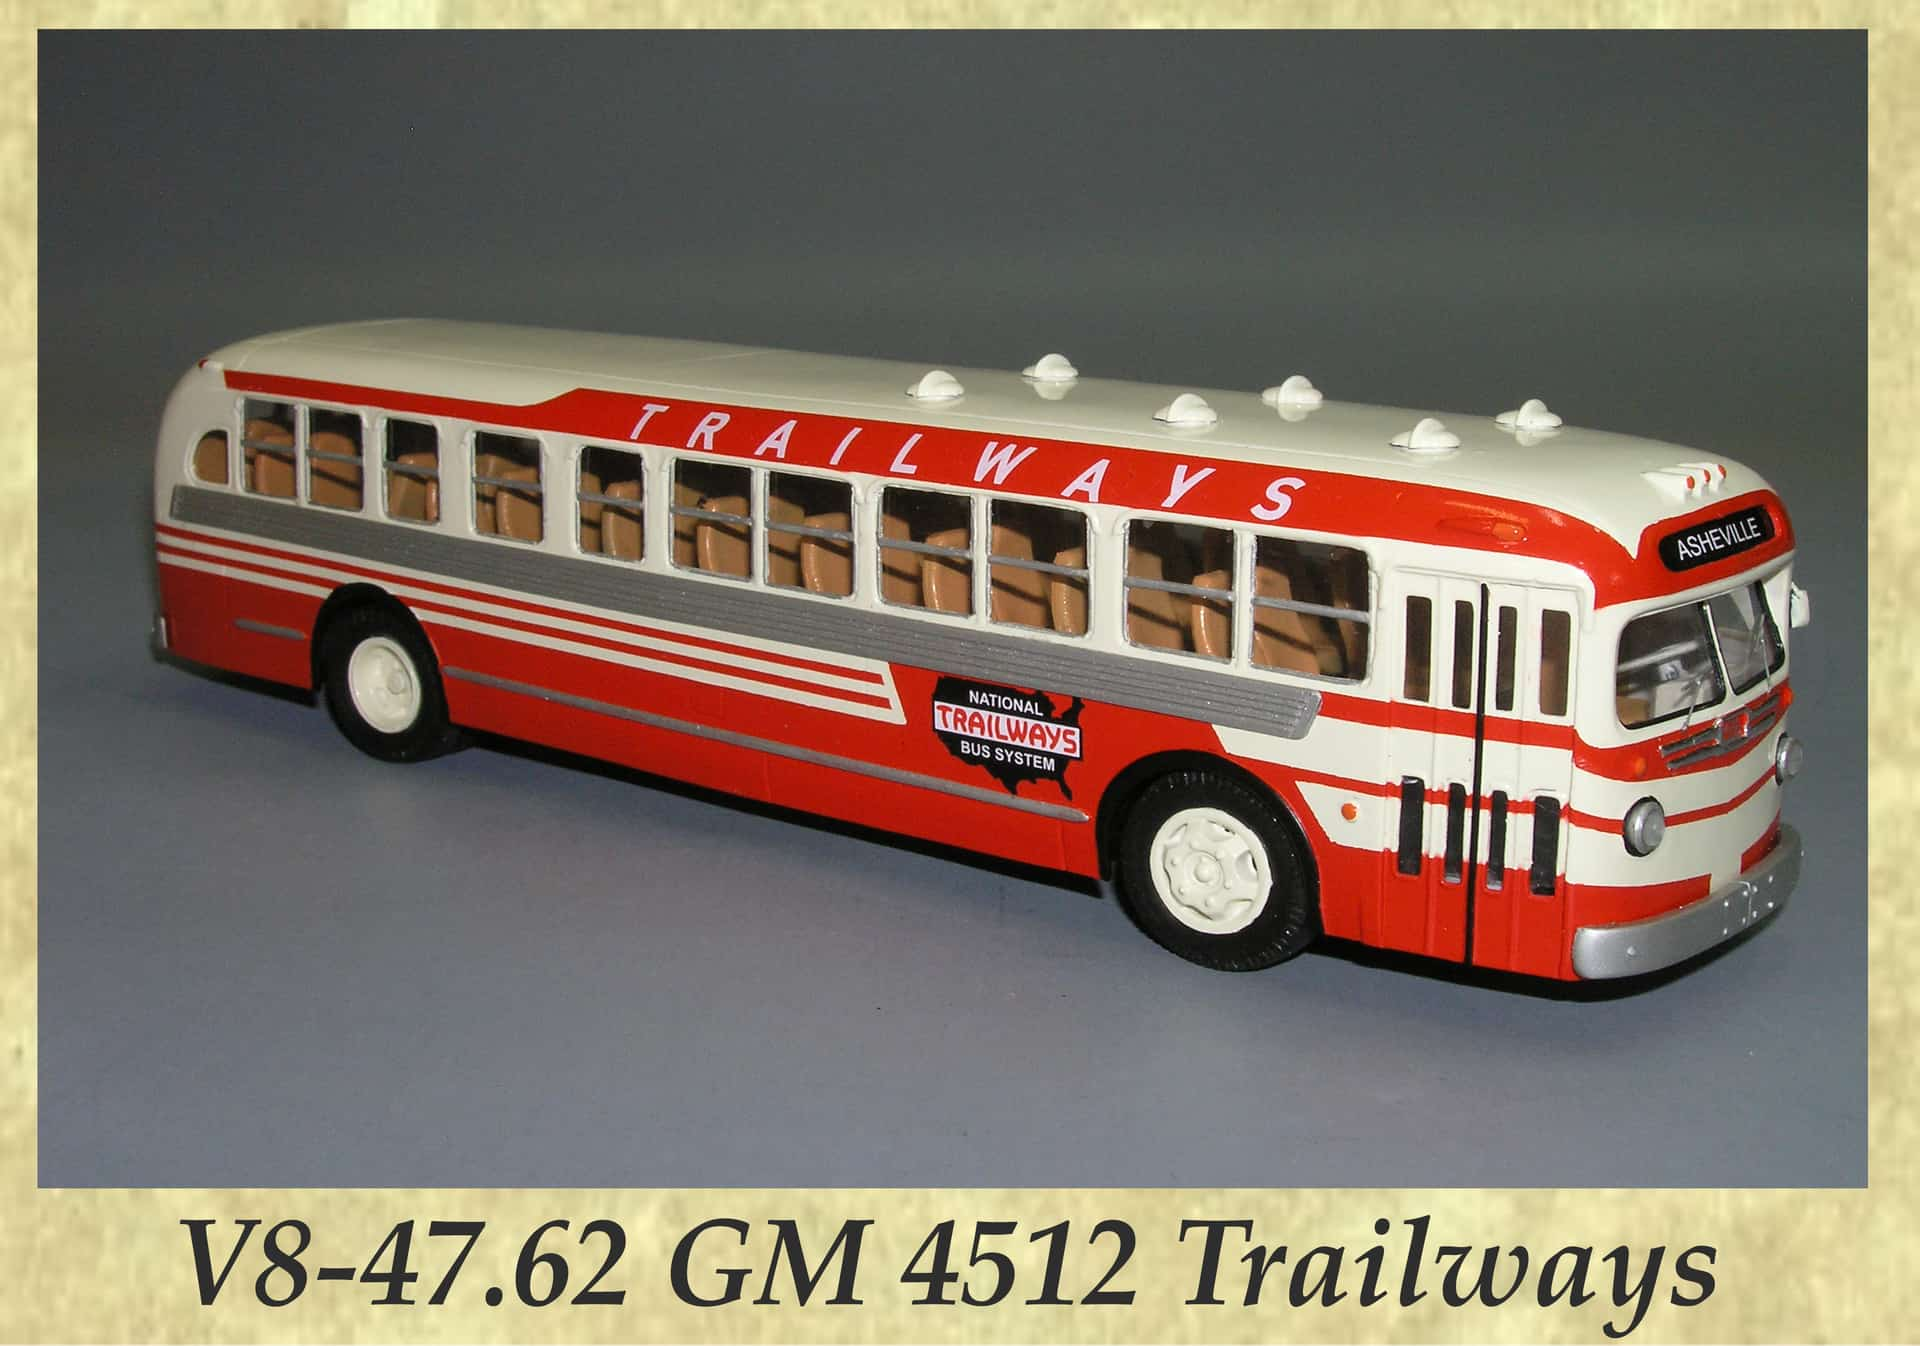 V8-47.62 GM 4512 Trailways